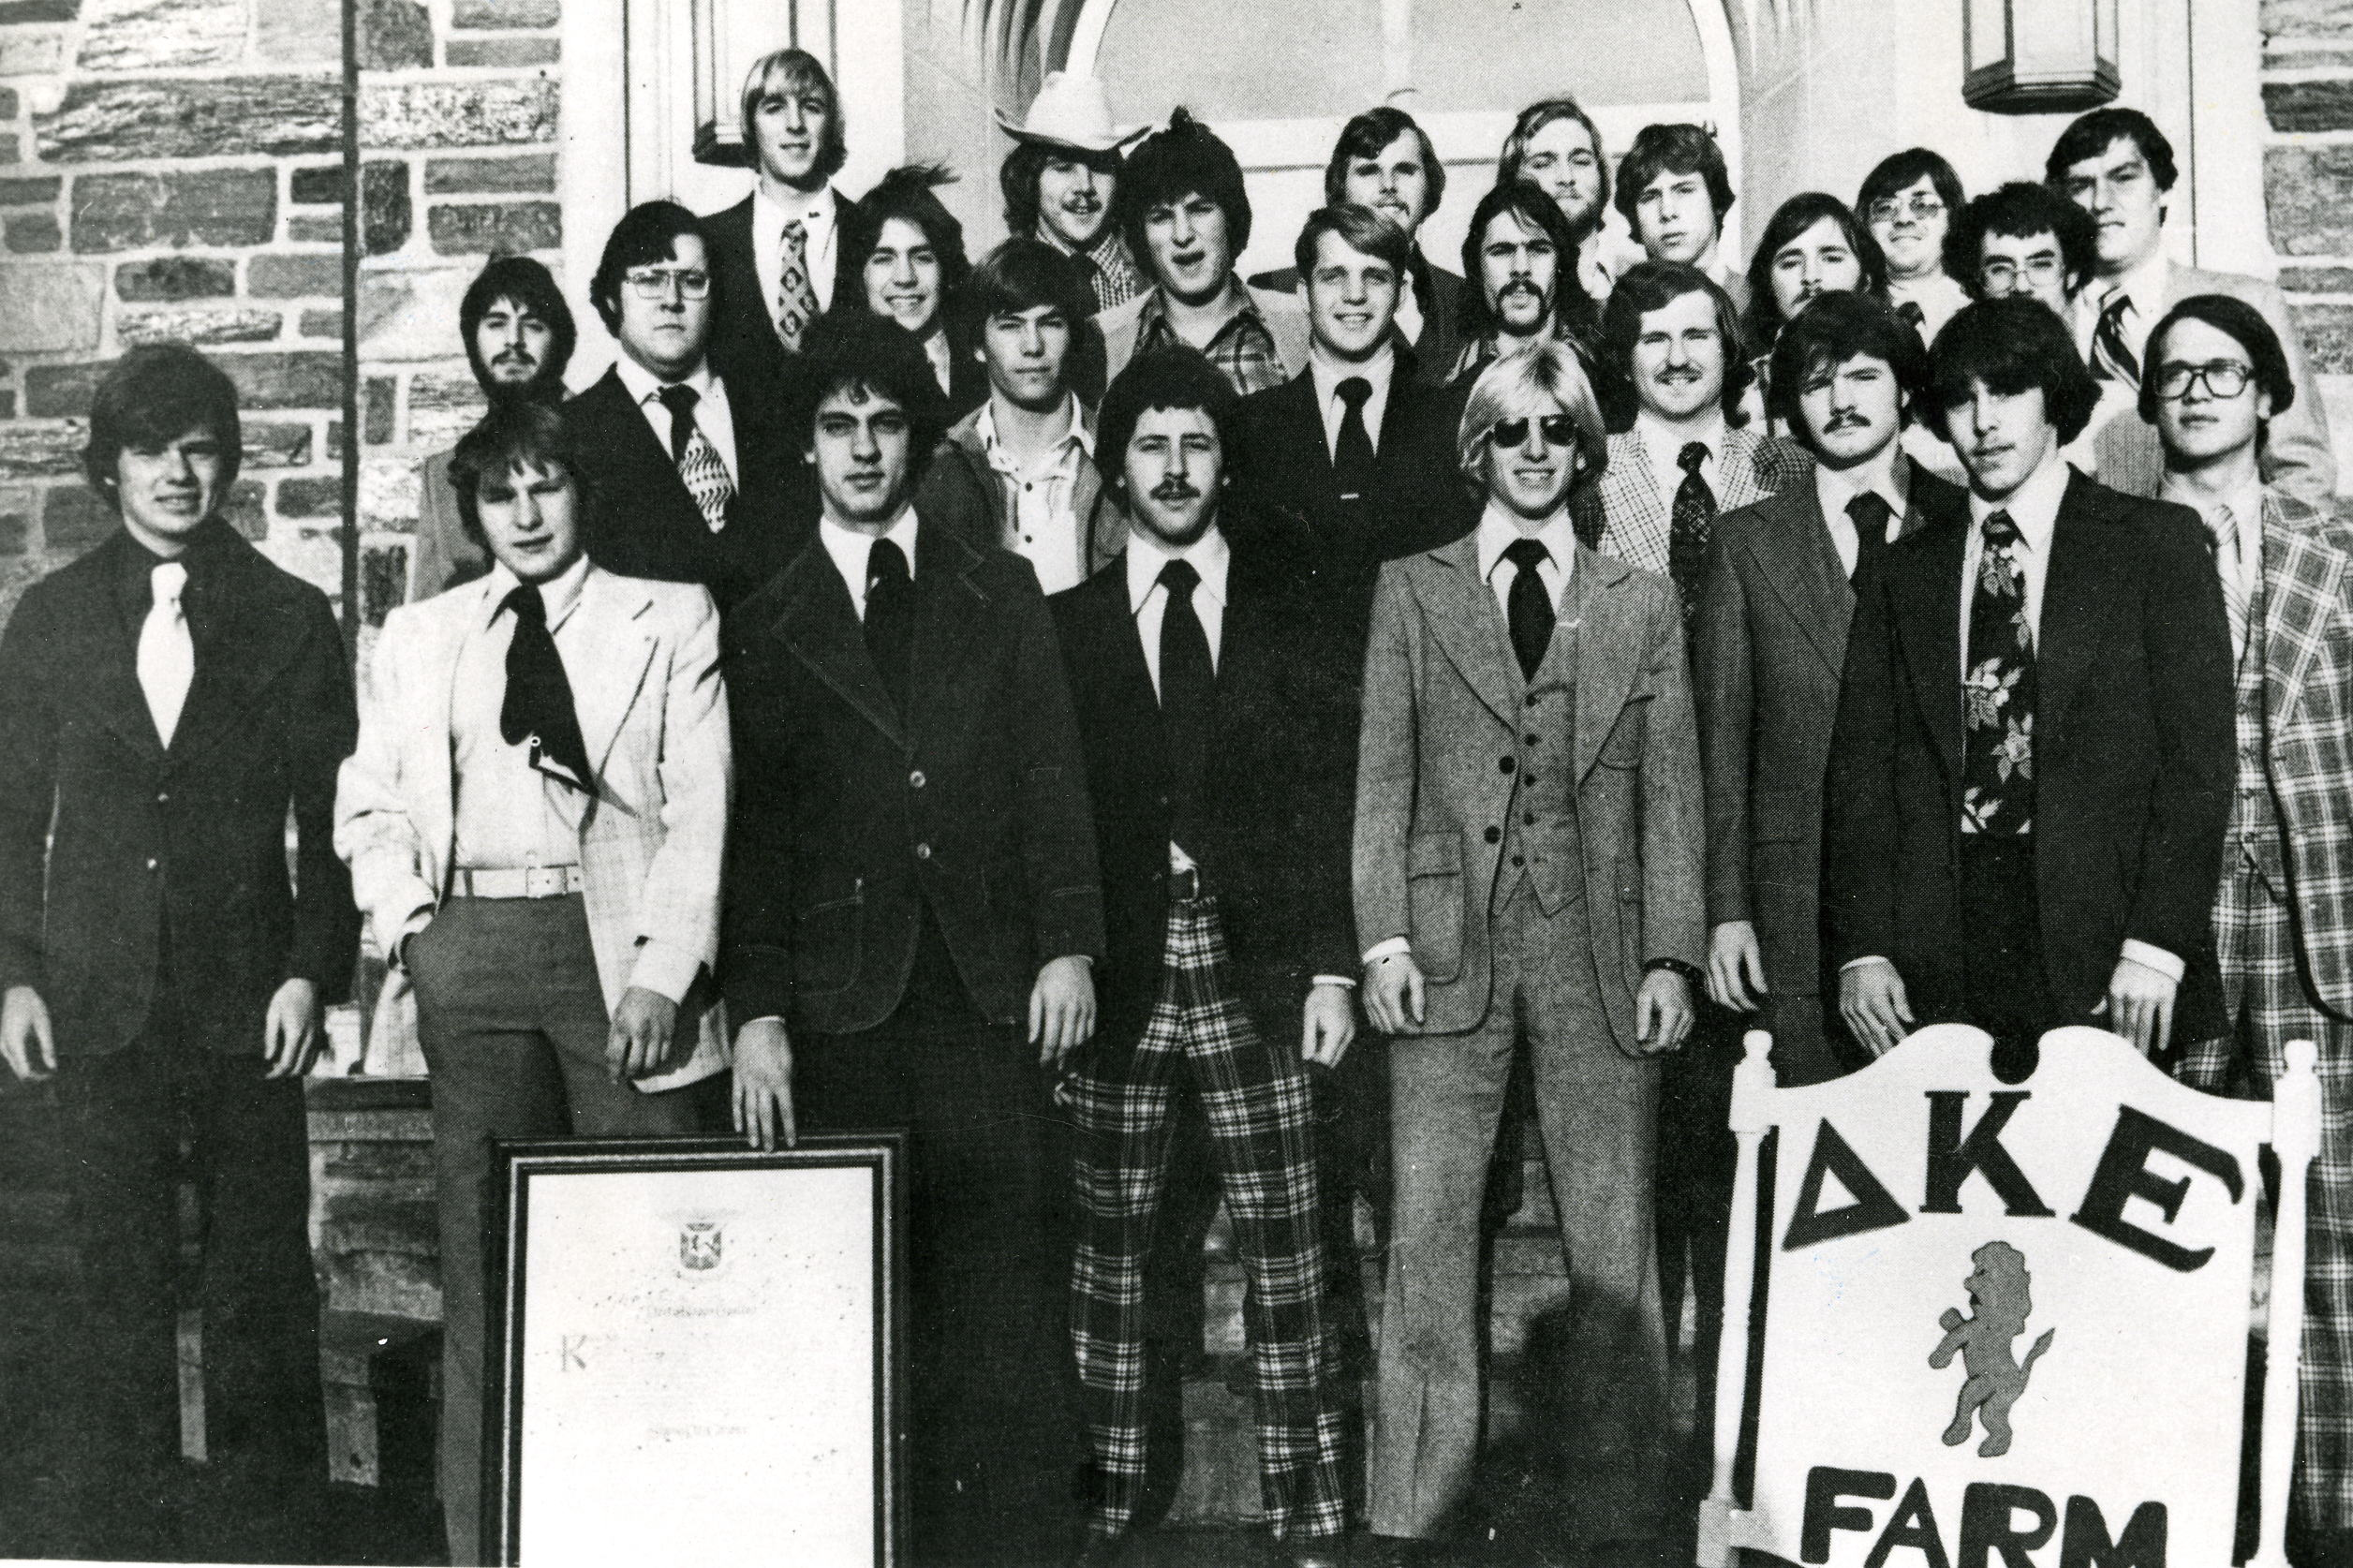 The Delta Kappa Epsilon fraternity at Villanova, 1979.